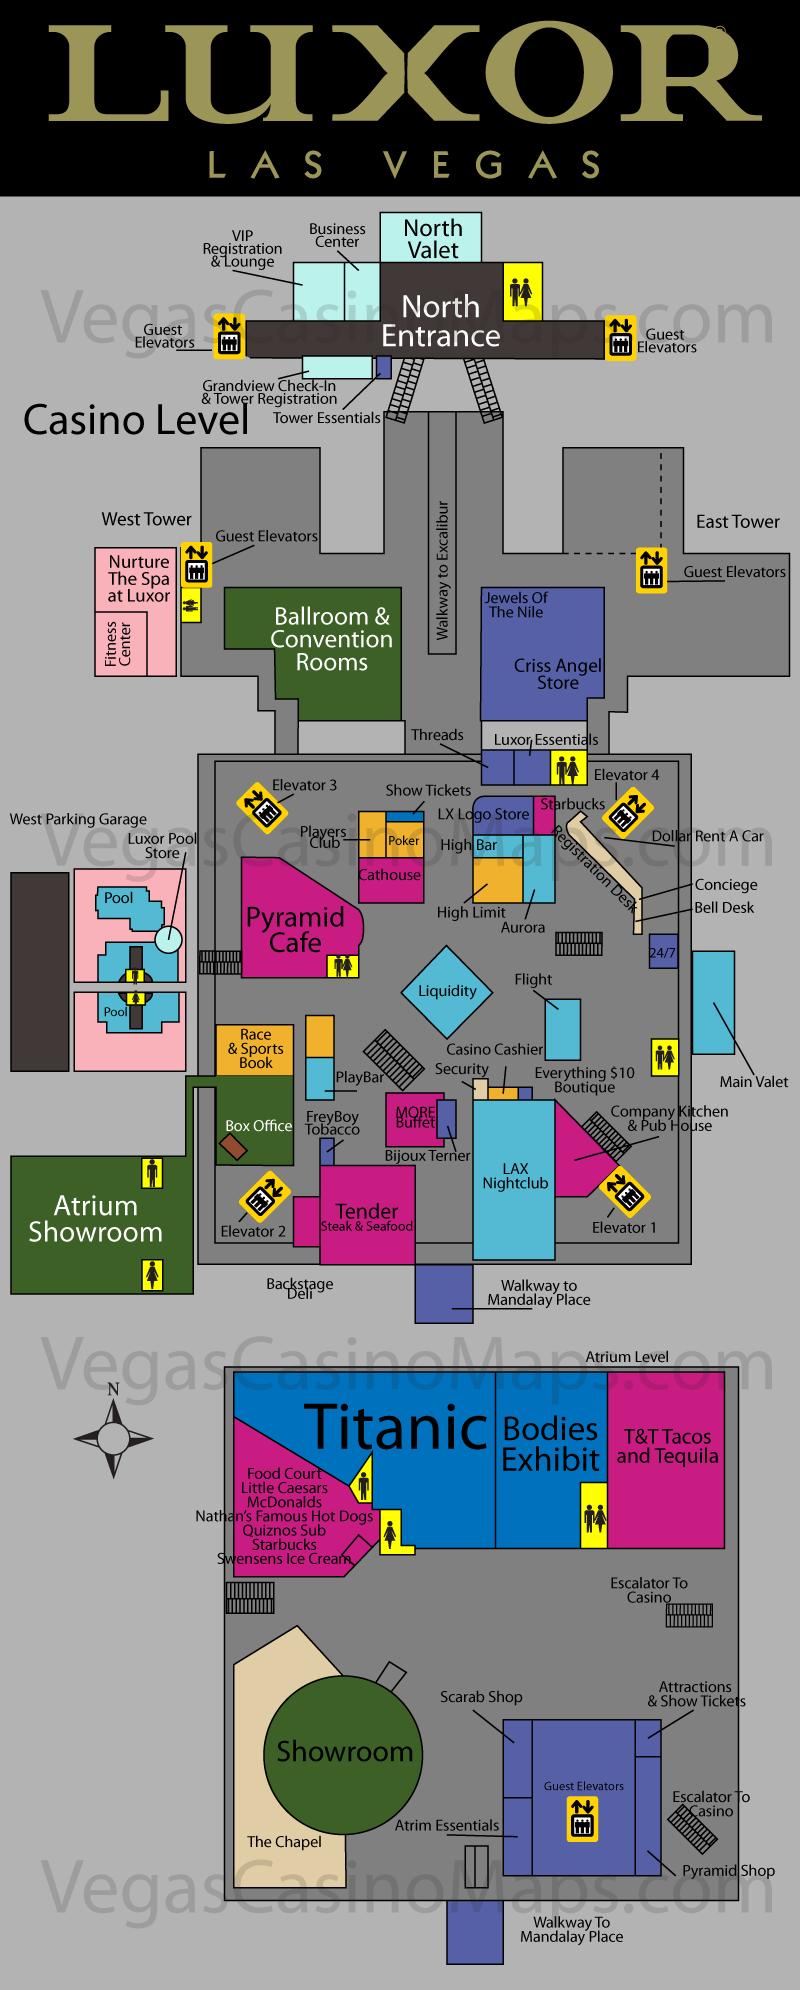 LuxorHotelLasVegasMap Click a link below to download Vegas